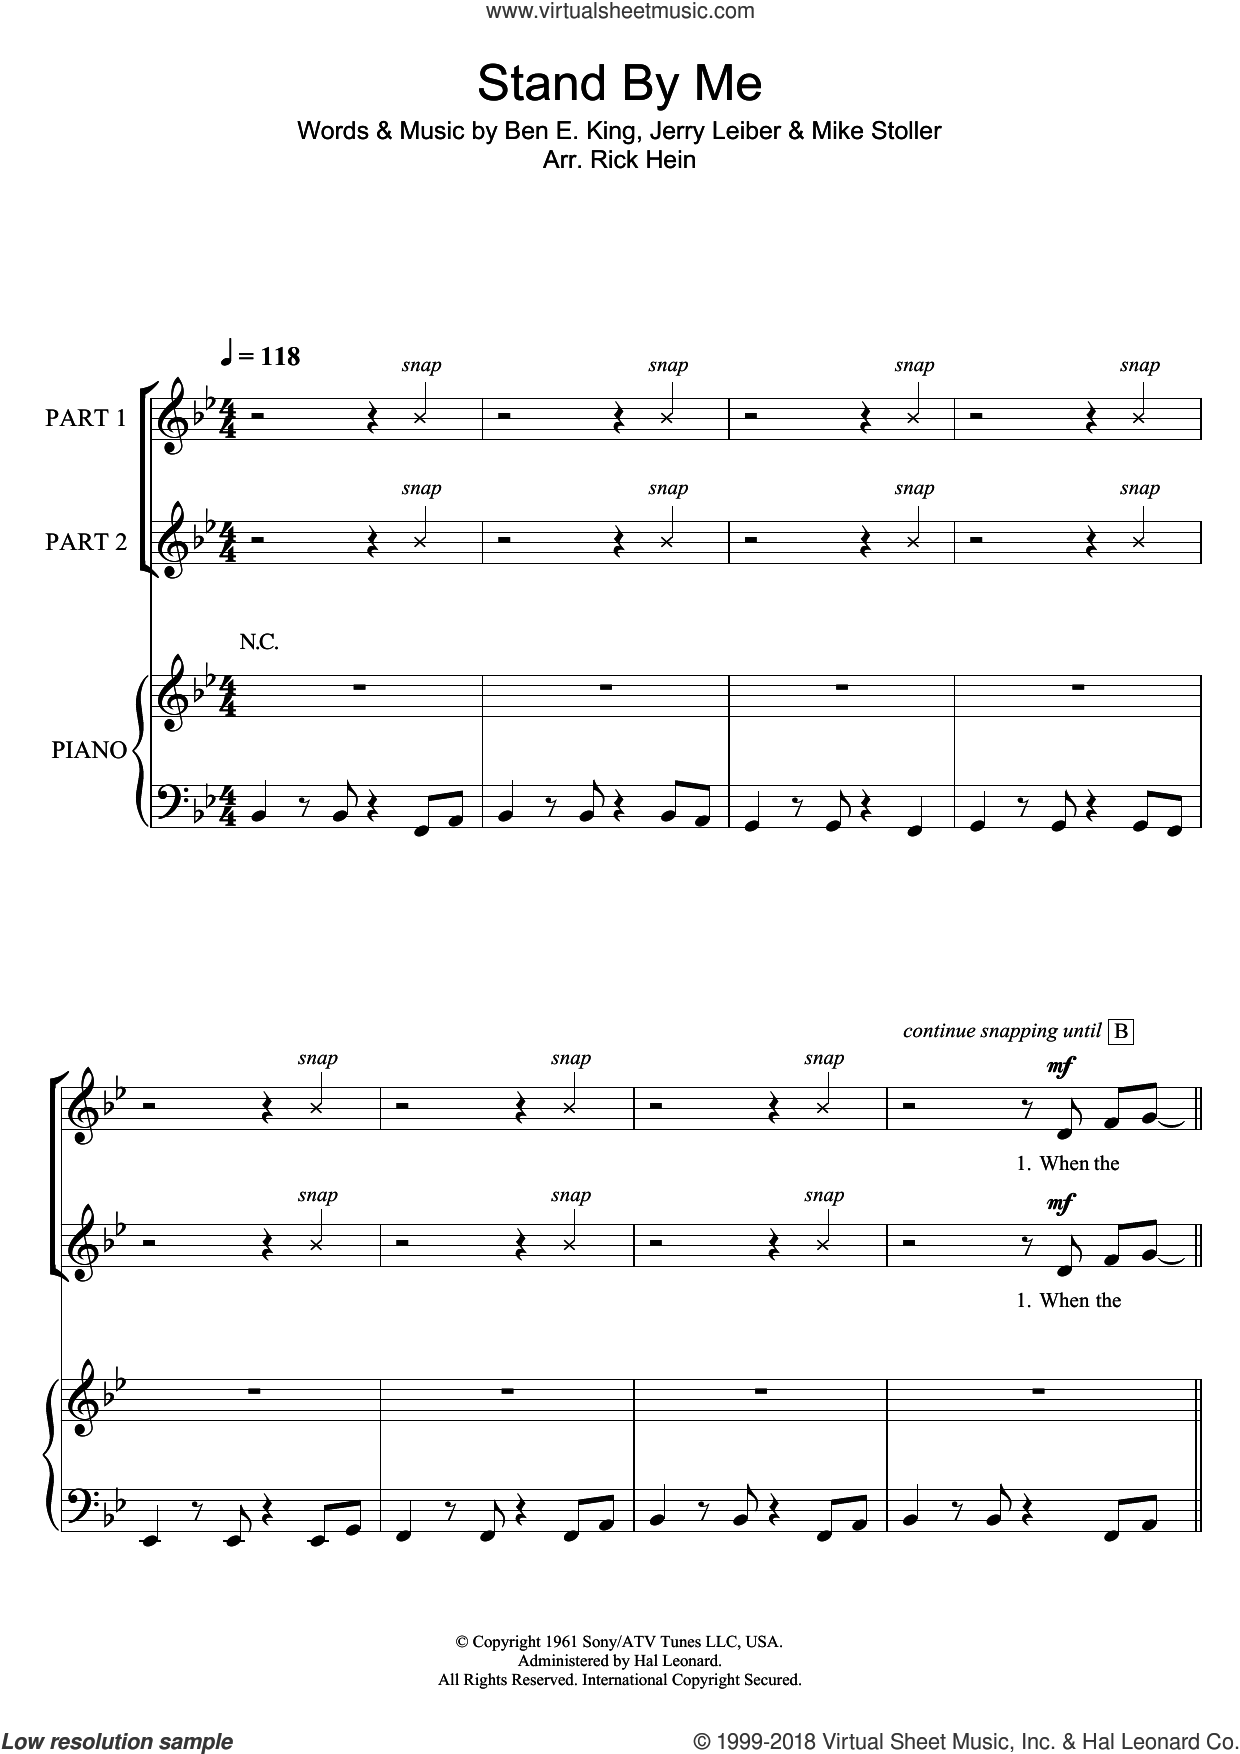 Stand By Me (arr. Rick Hein) sheet music for choir and piano by Jerry Leiber